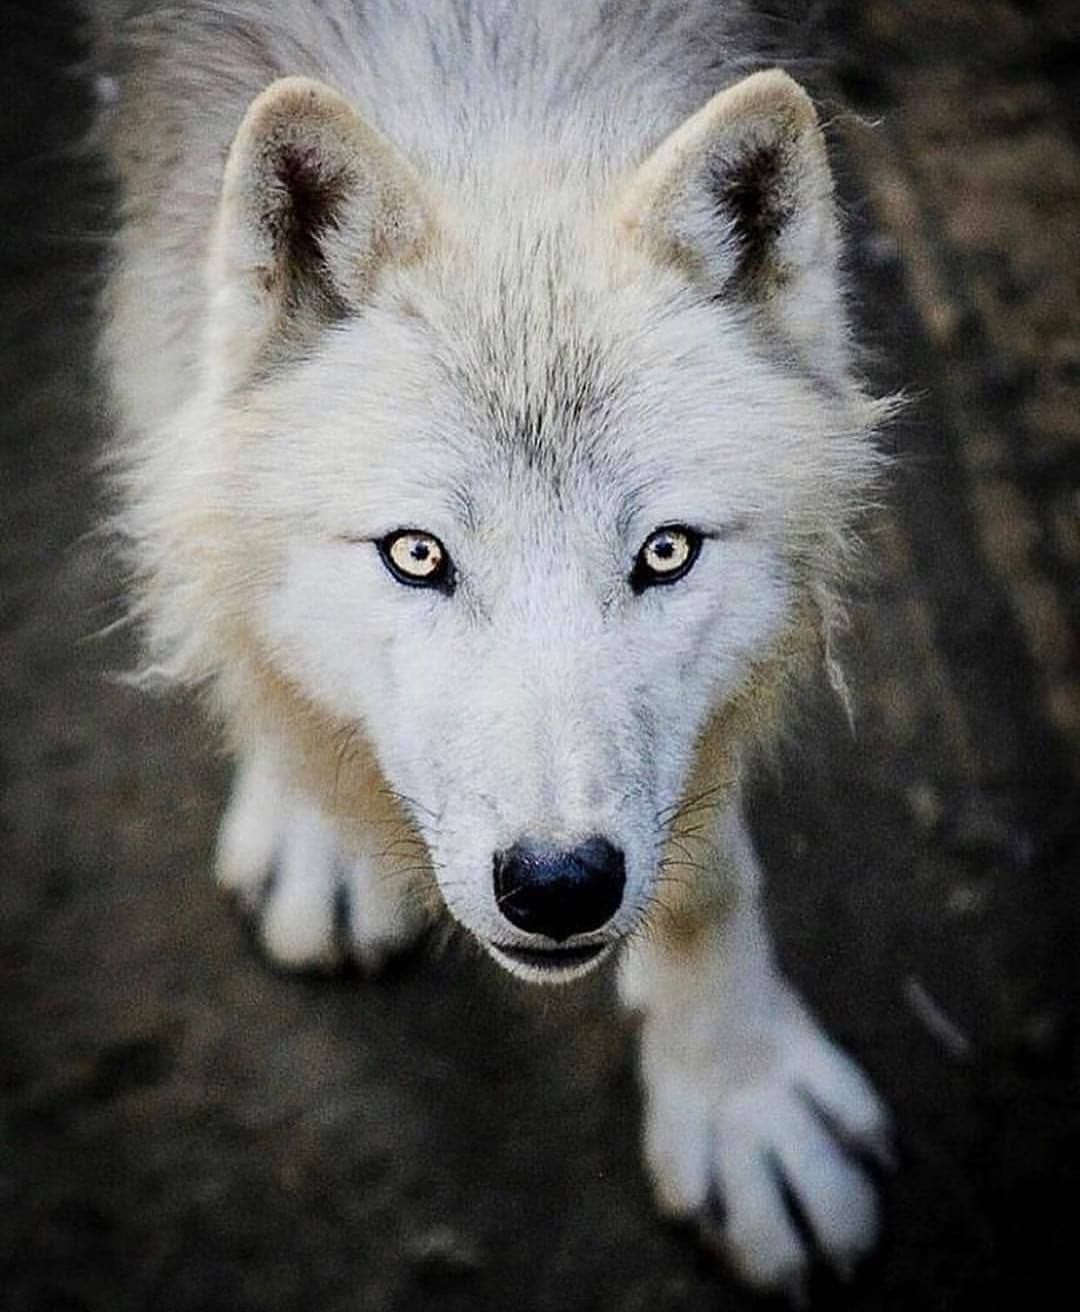 Olf the best animal rate follow wolfloversclubs